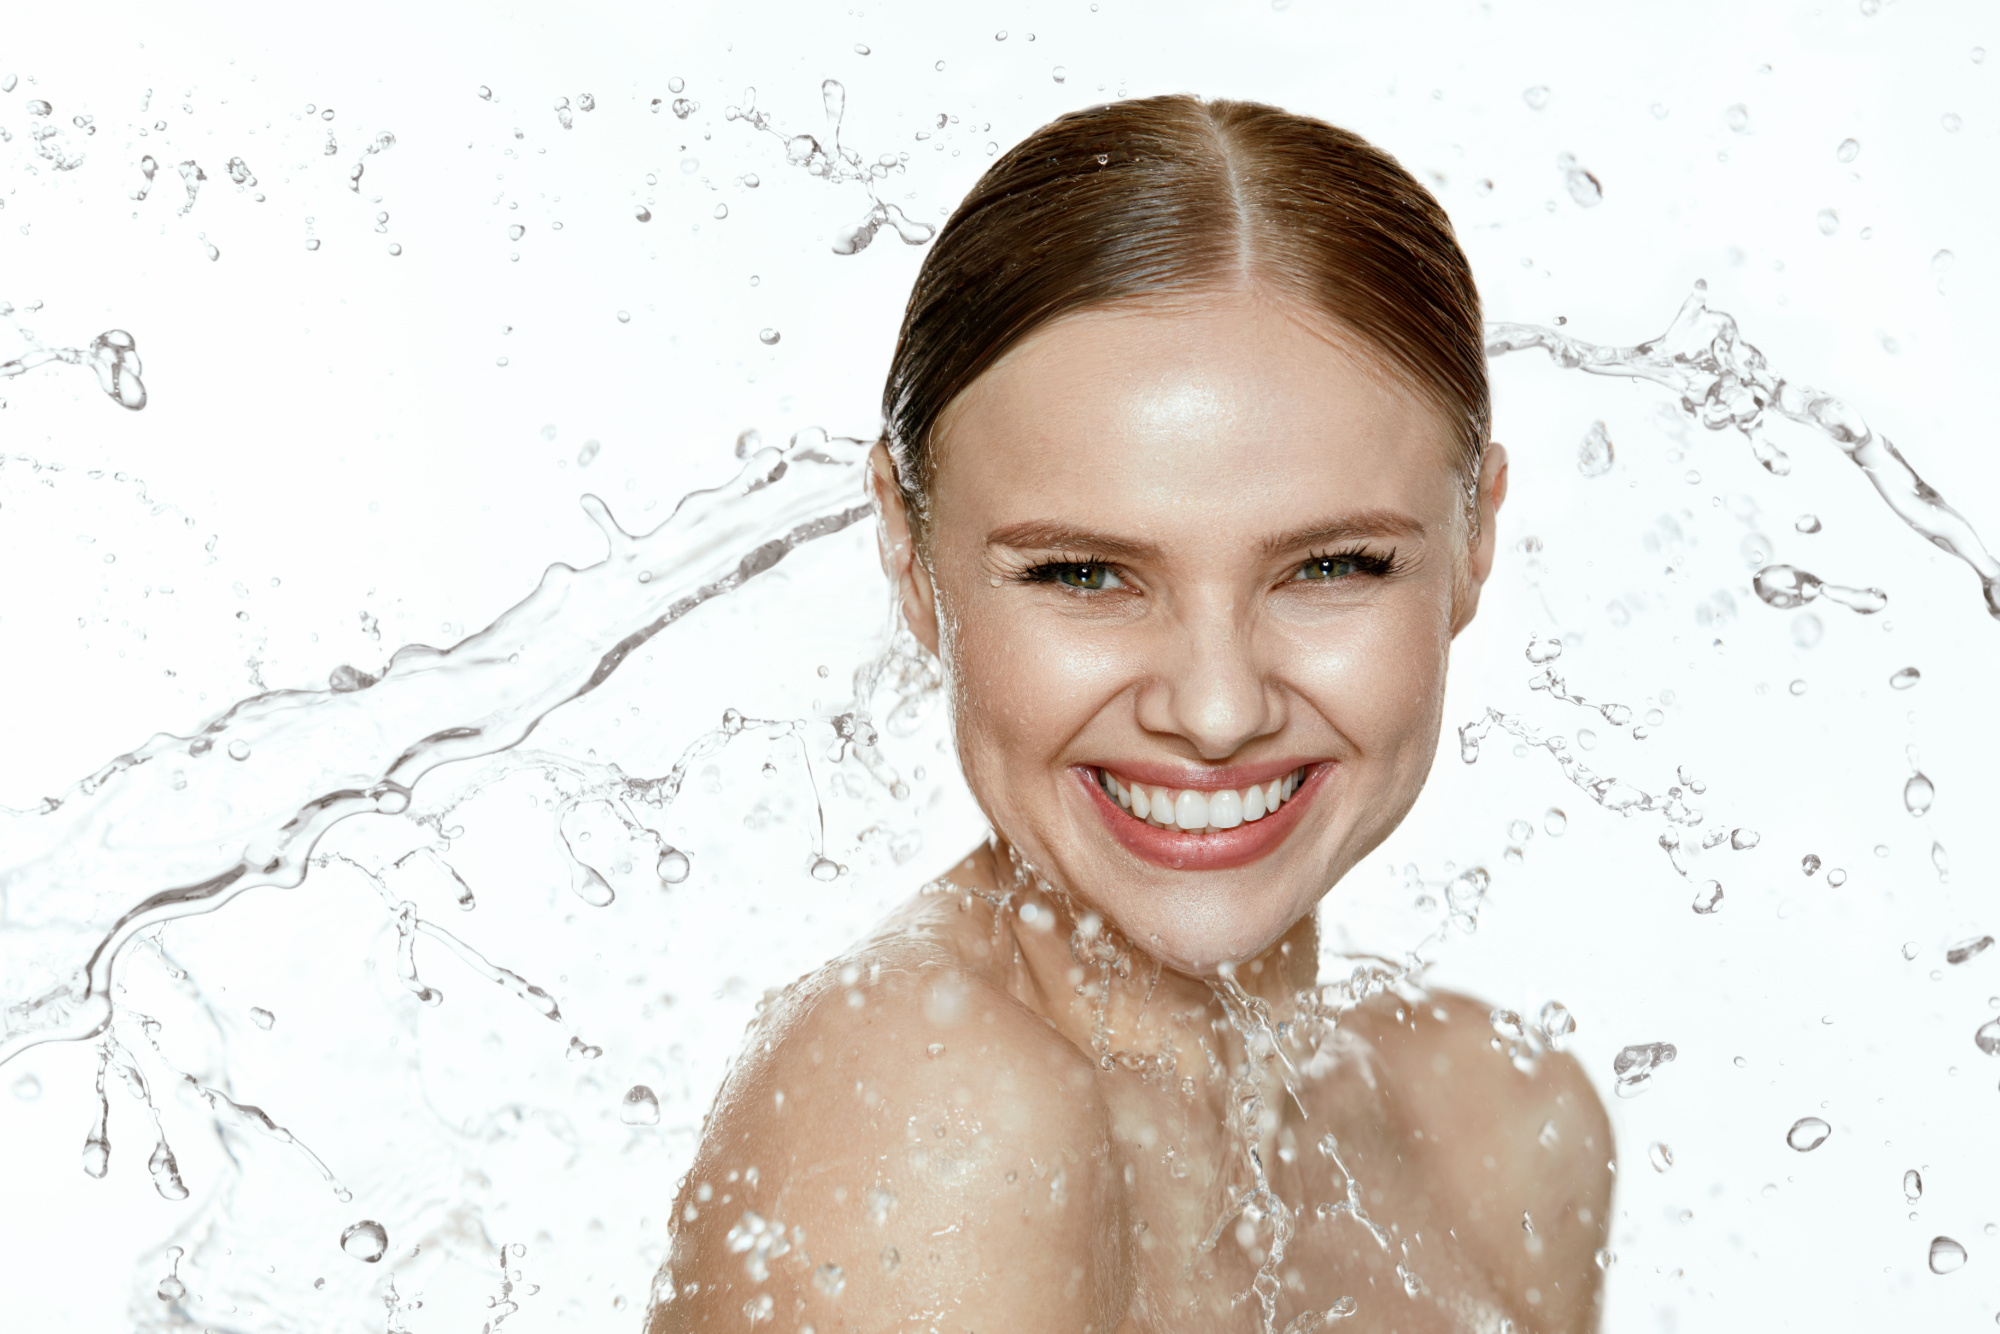 Not-So-Secret Ingredient Can Boost Your Skin Hydration 1,000X Its Weight